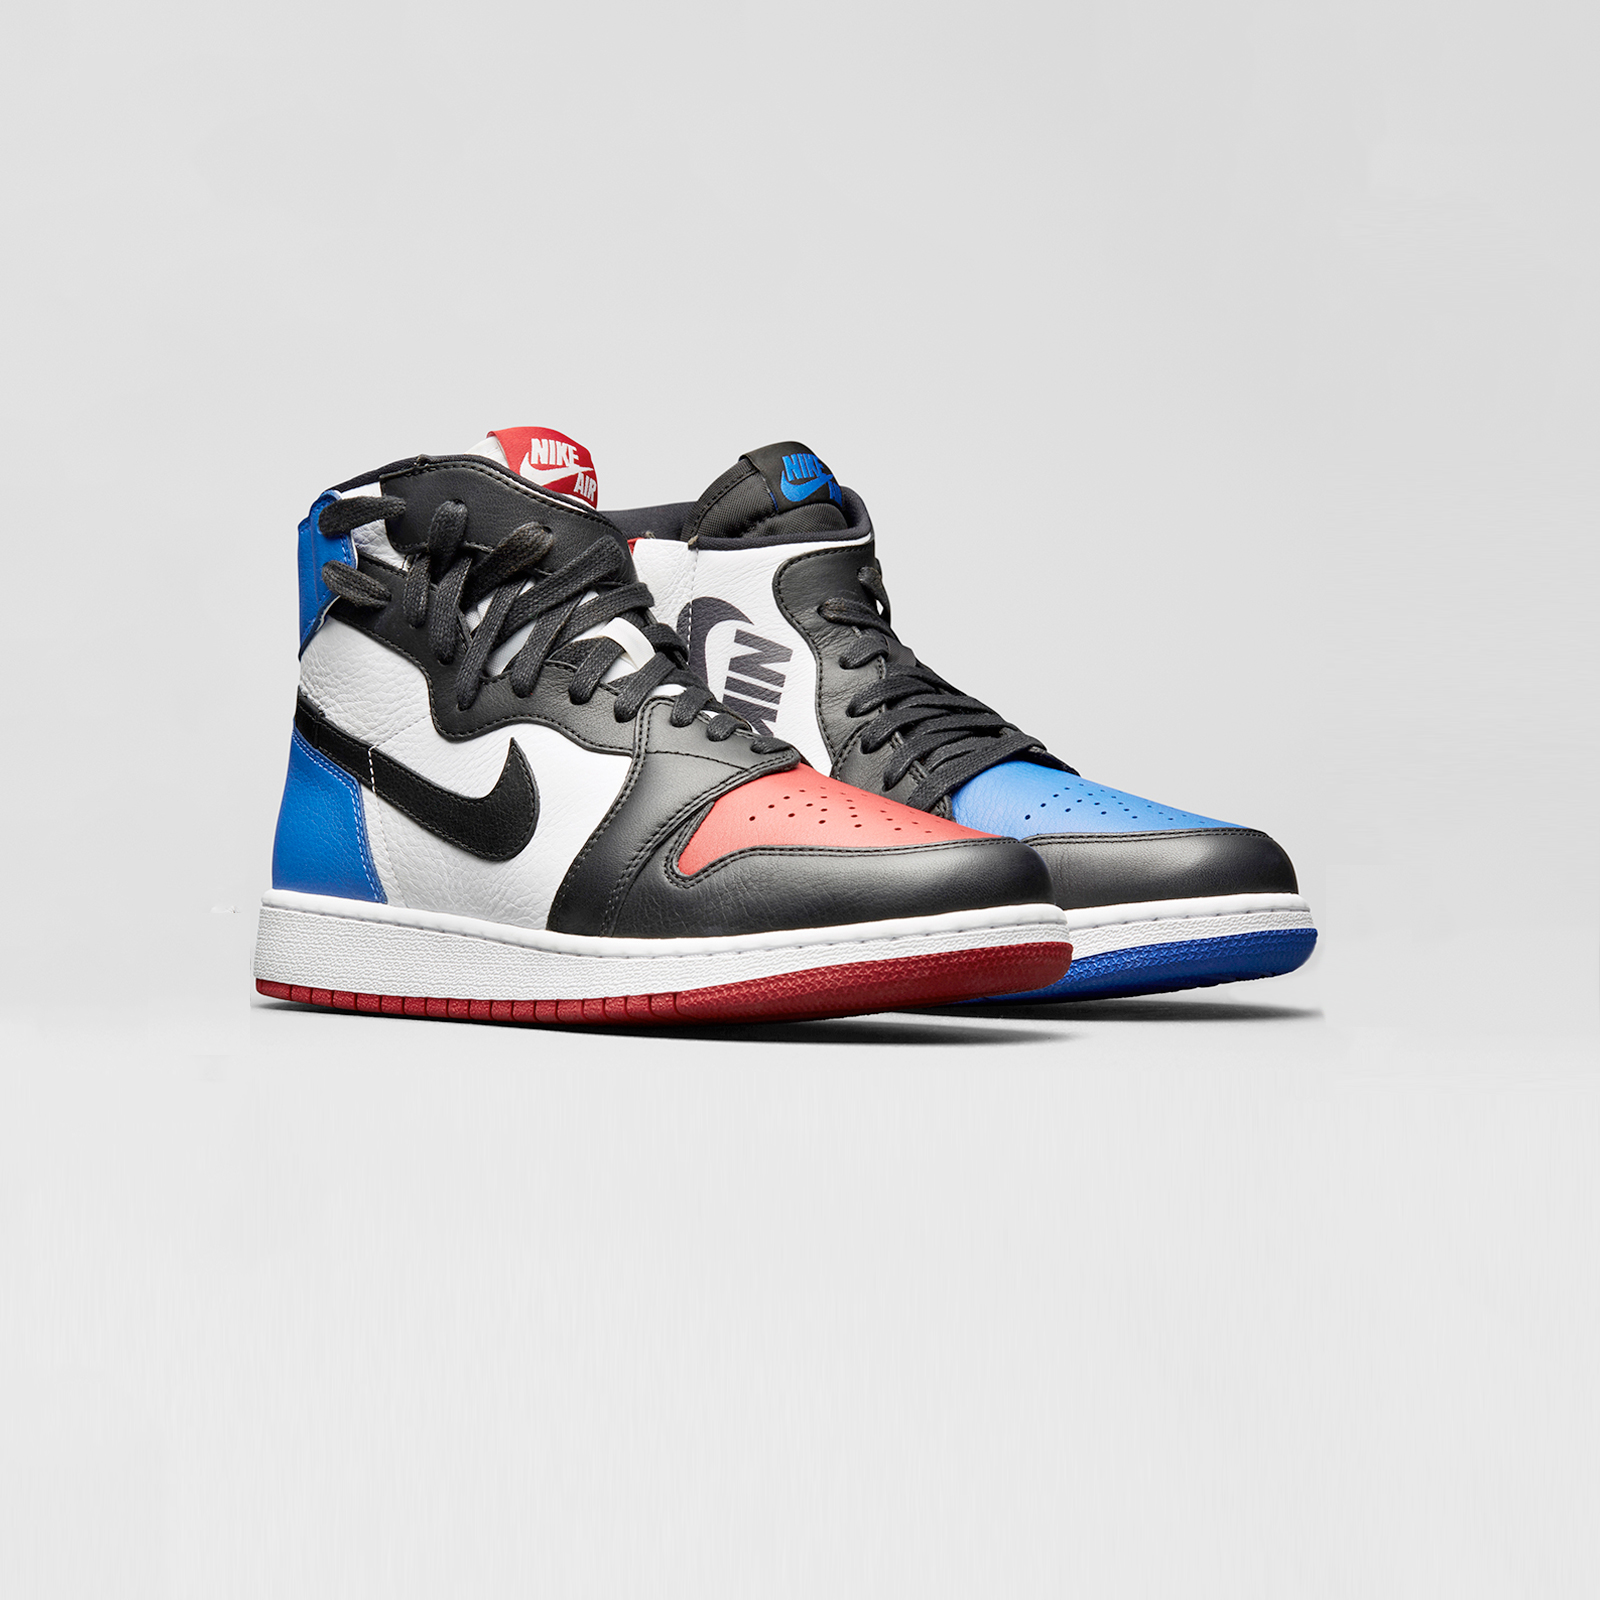 e489b20ca39 Jordan Brand Air Jordan 1 Rebel XX OG - At4151-001 - Sneakersnstuff ...